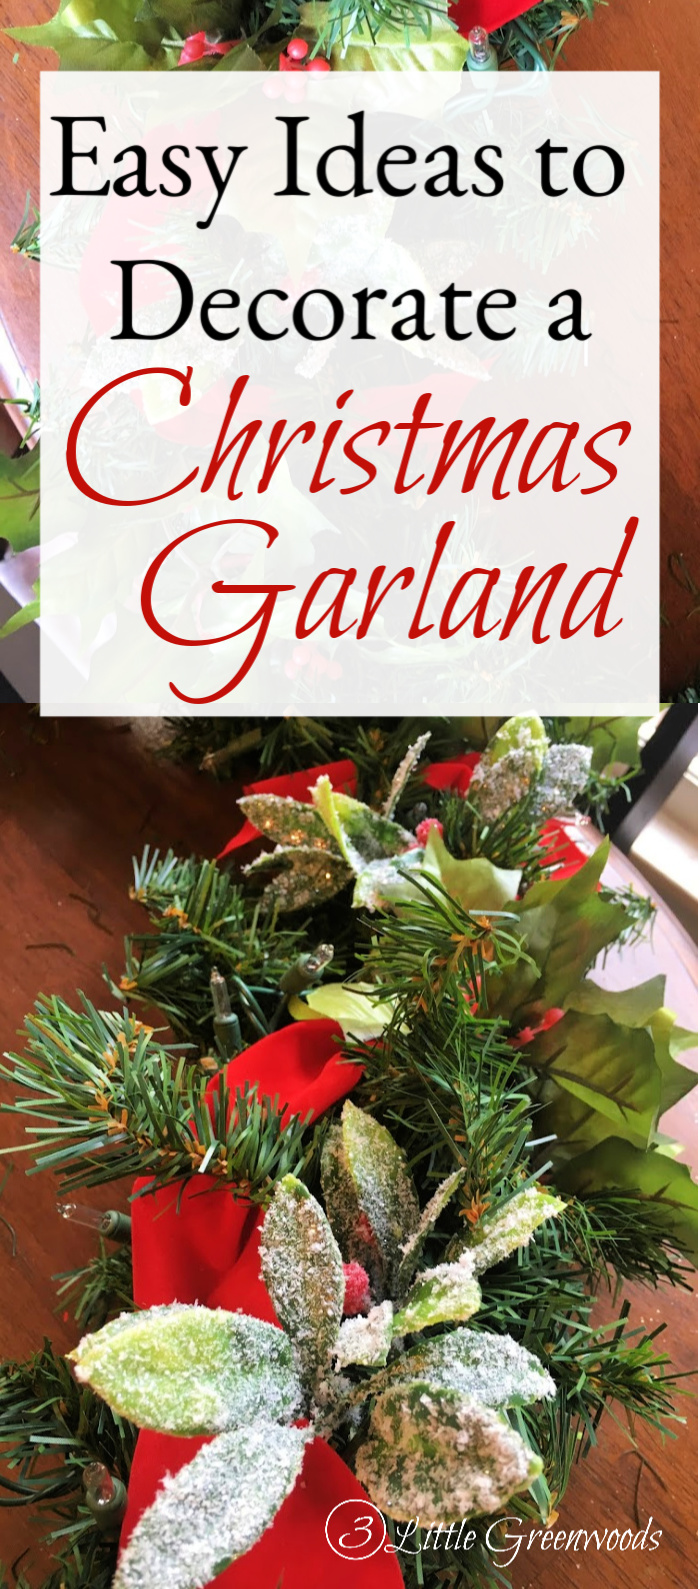 How To Decorate Christmas Garland With Lights 3 Little Greenwoods